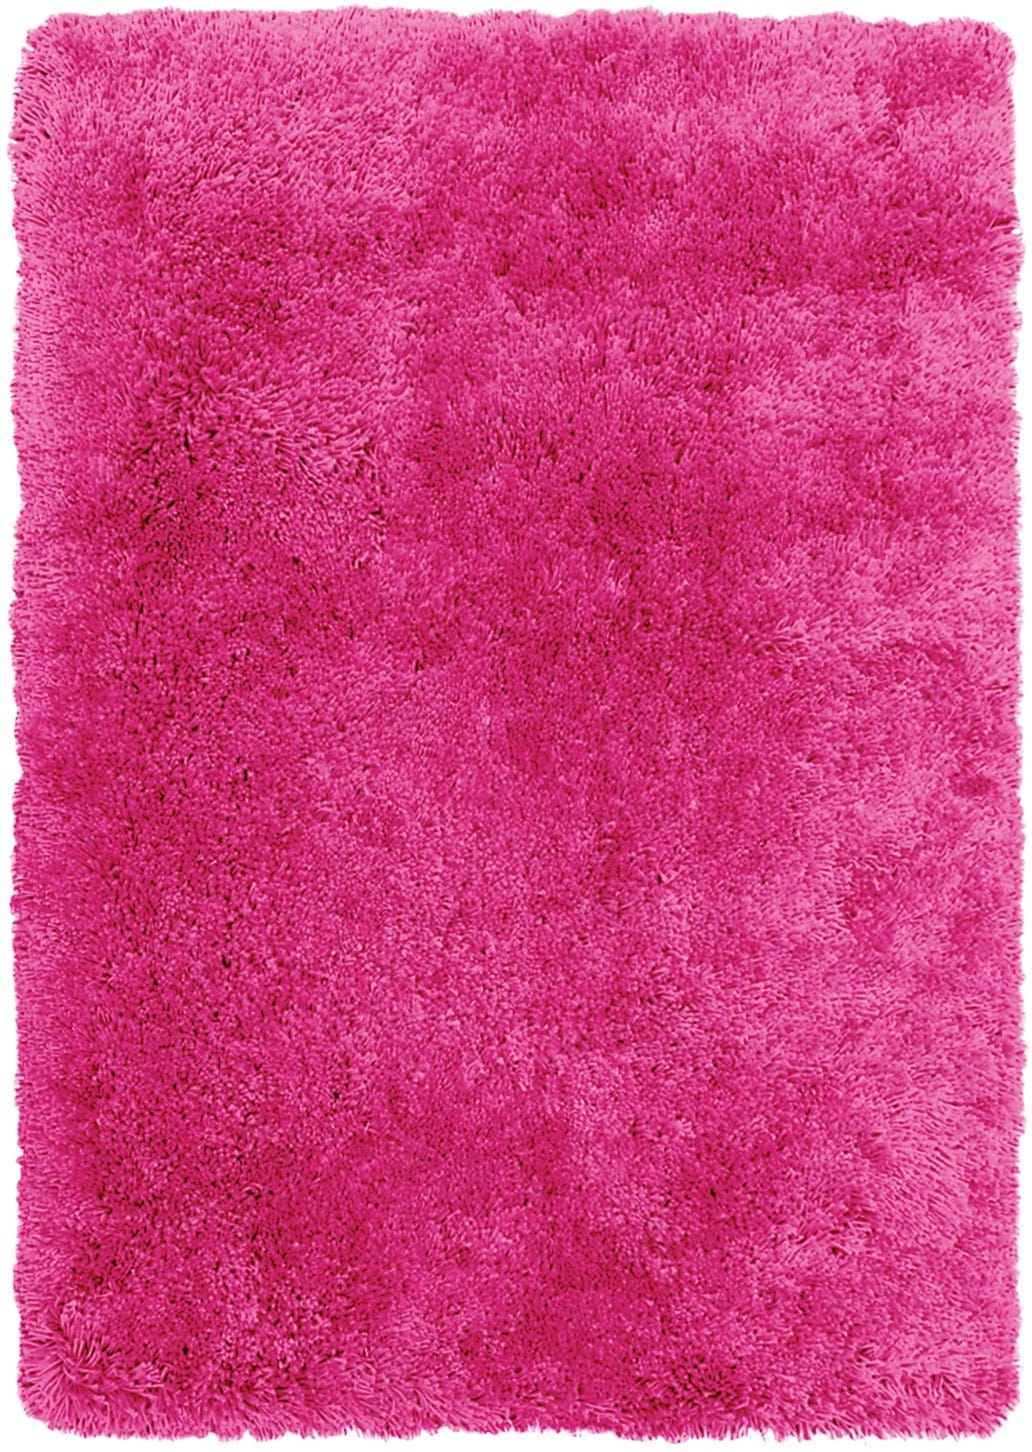 Pink Fashion Shag Area Rug – 4' x 5'